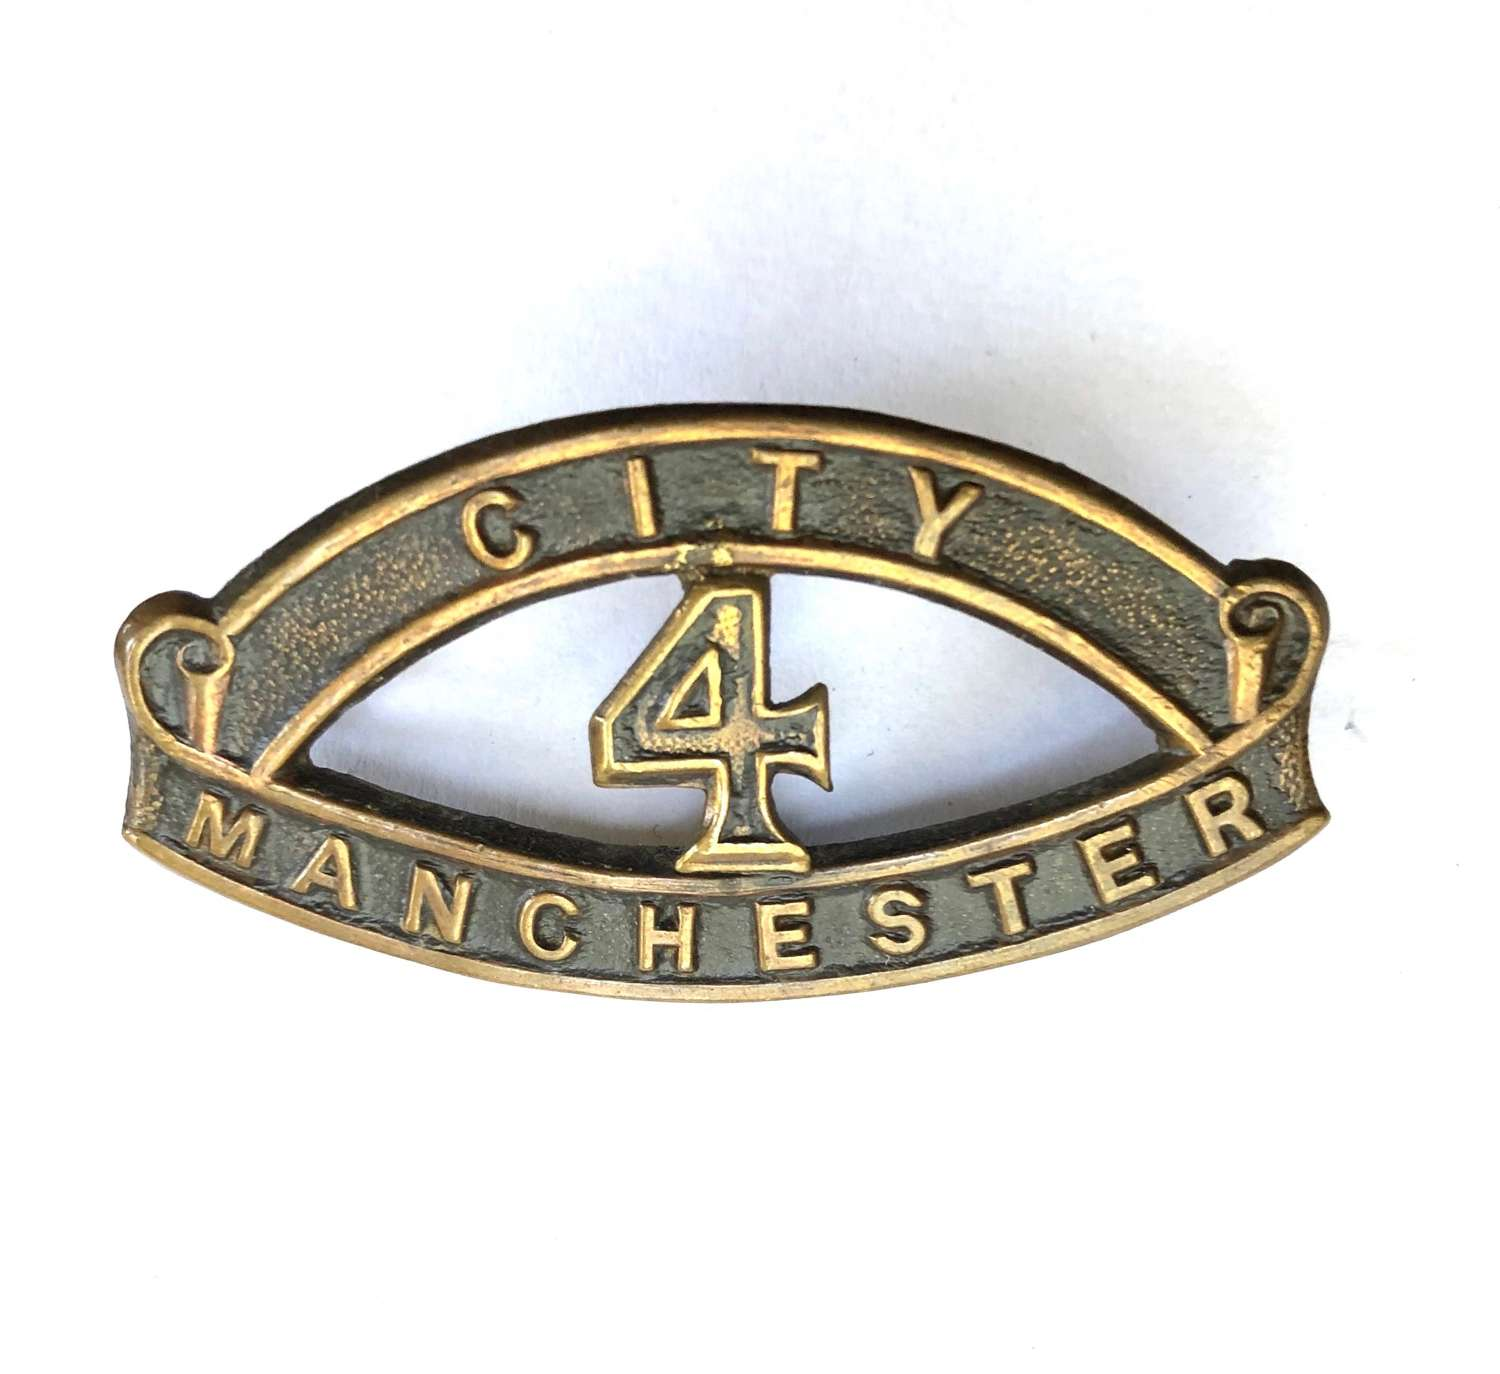 CITY / 4 / MANCHESTER  'Manchester Pals'  'Kitchener's Army' title